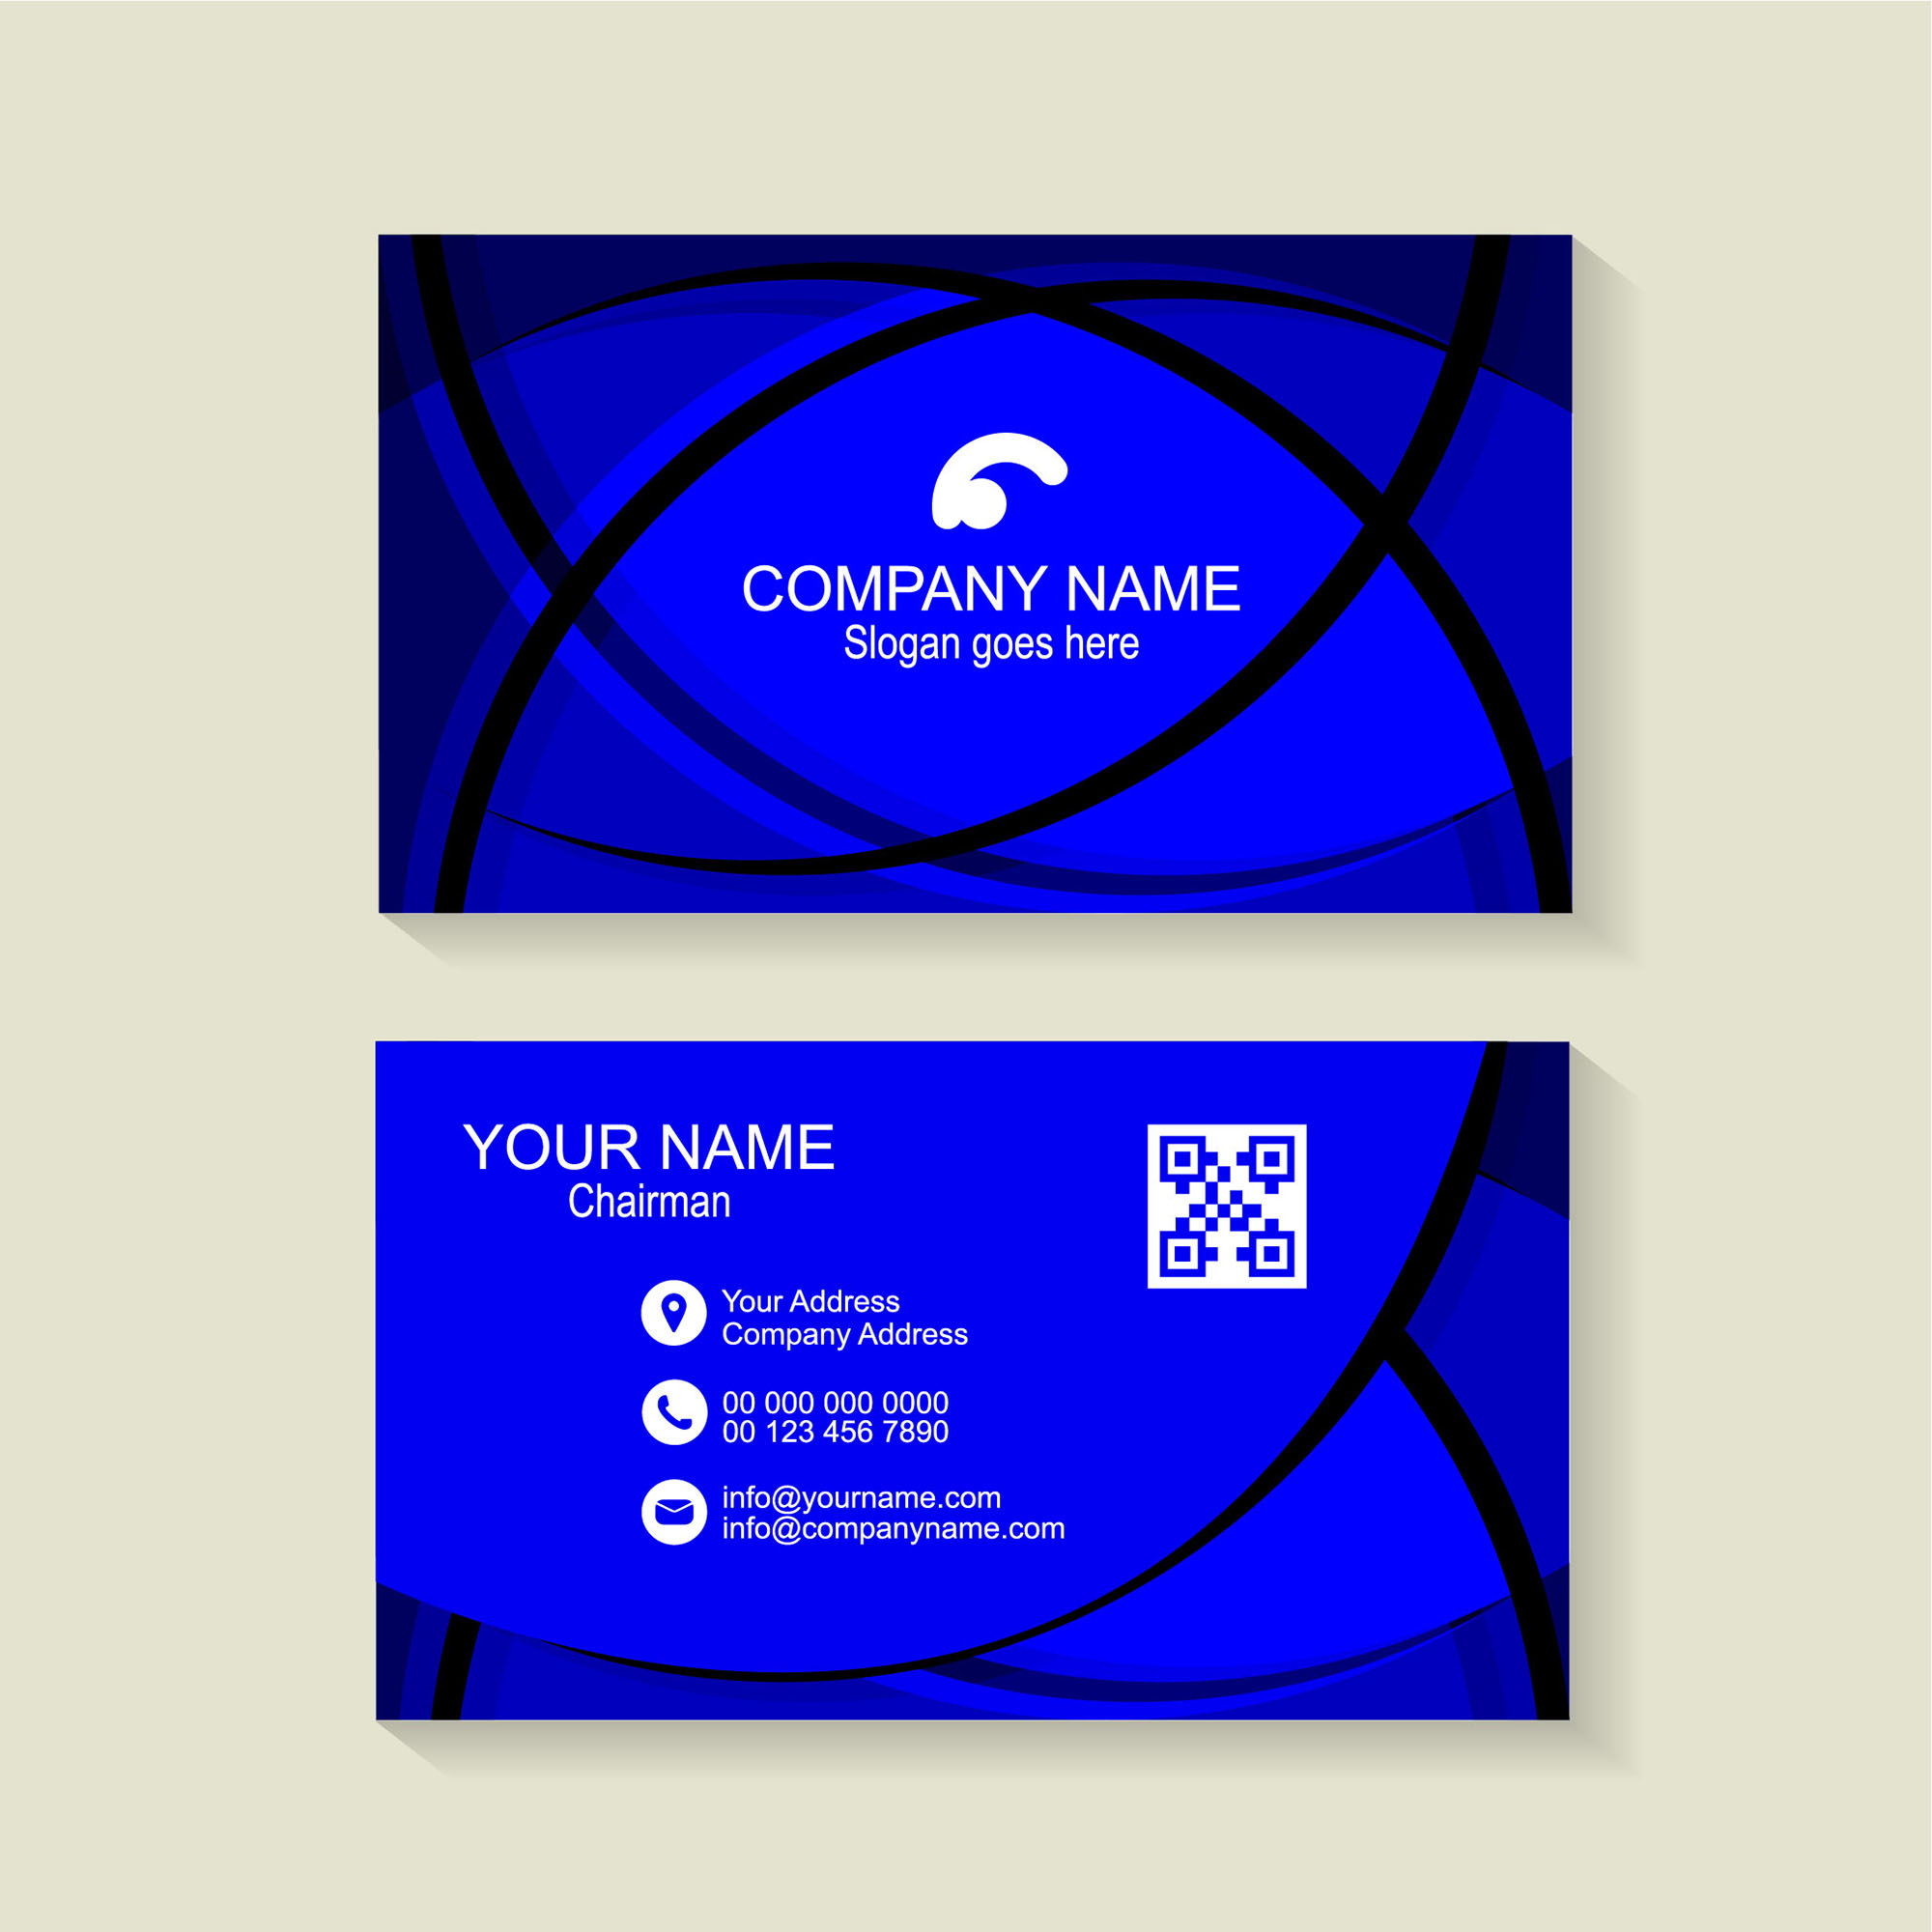 Blue business card background free download wisxi business card business cards business card design business card template design templates cheaphphosting Image collections